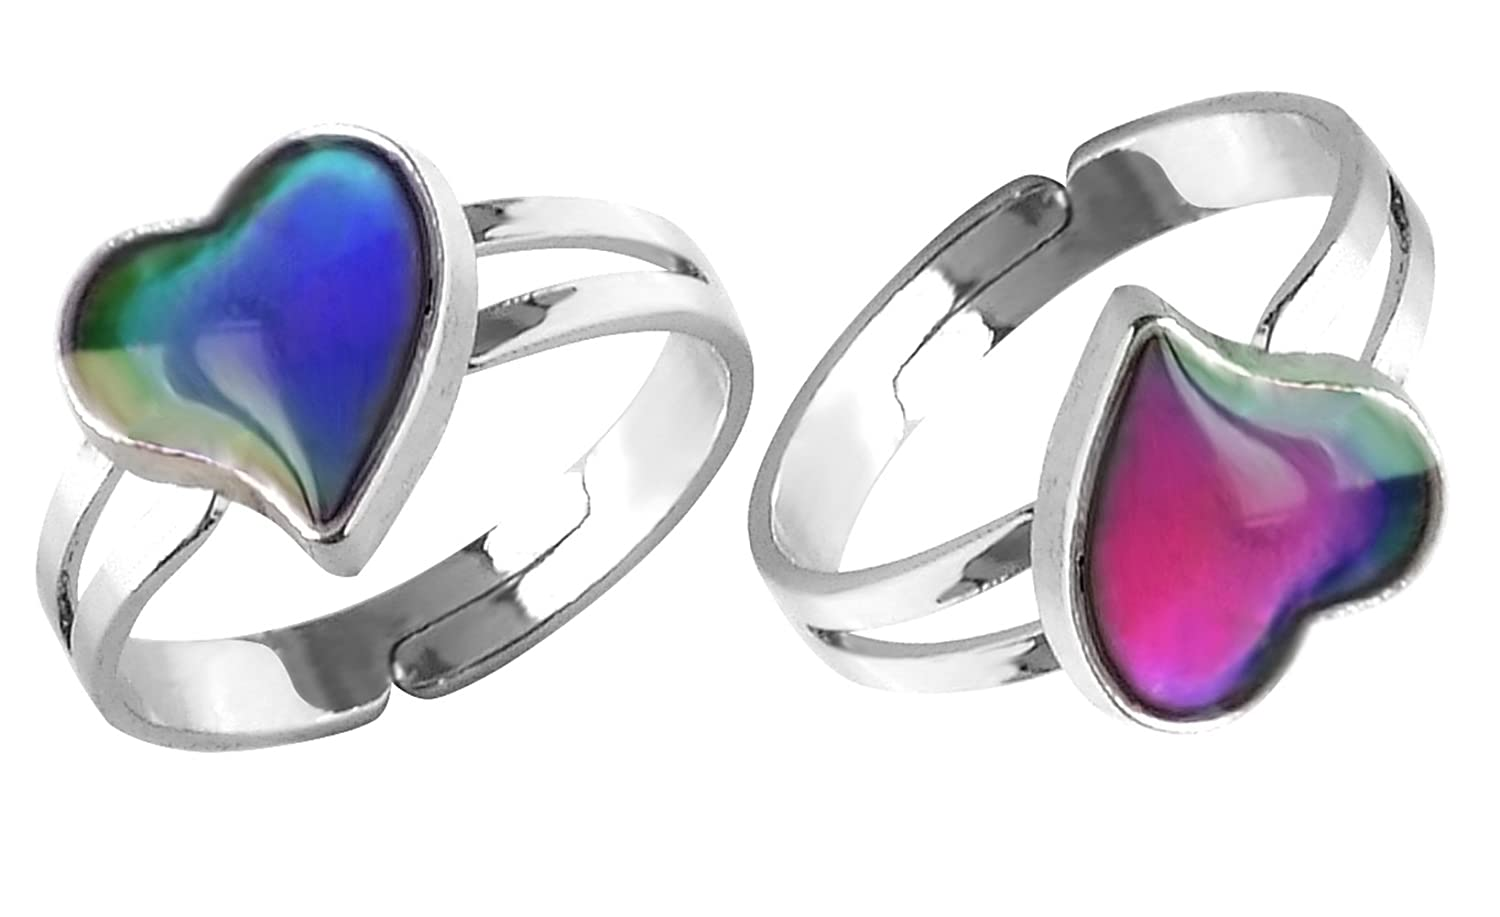 Acchen Mood Ring Heart Love Changing Color Emotion Feeling Finger Rings 2pcs with Box